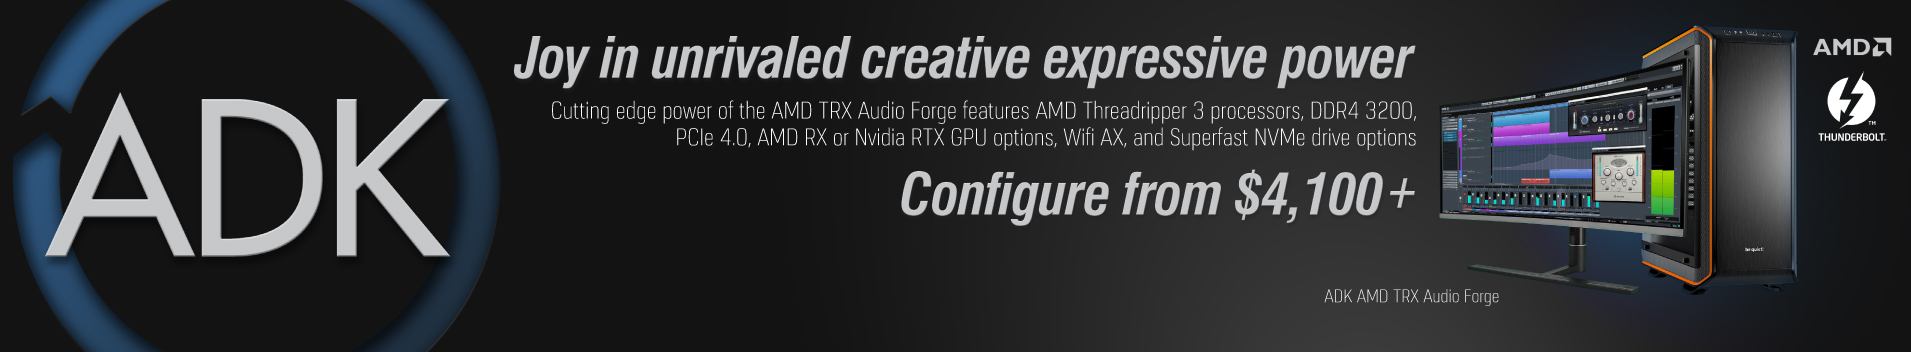 ADK TRX Audio Forge DAW Workstation. AMD's TRX40 Chipset and latest Ryzen 3rd Generation Threadripper processors. Contact Us today to configure your system!